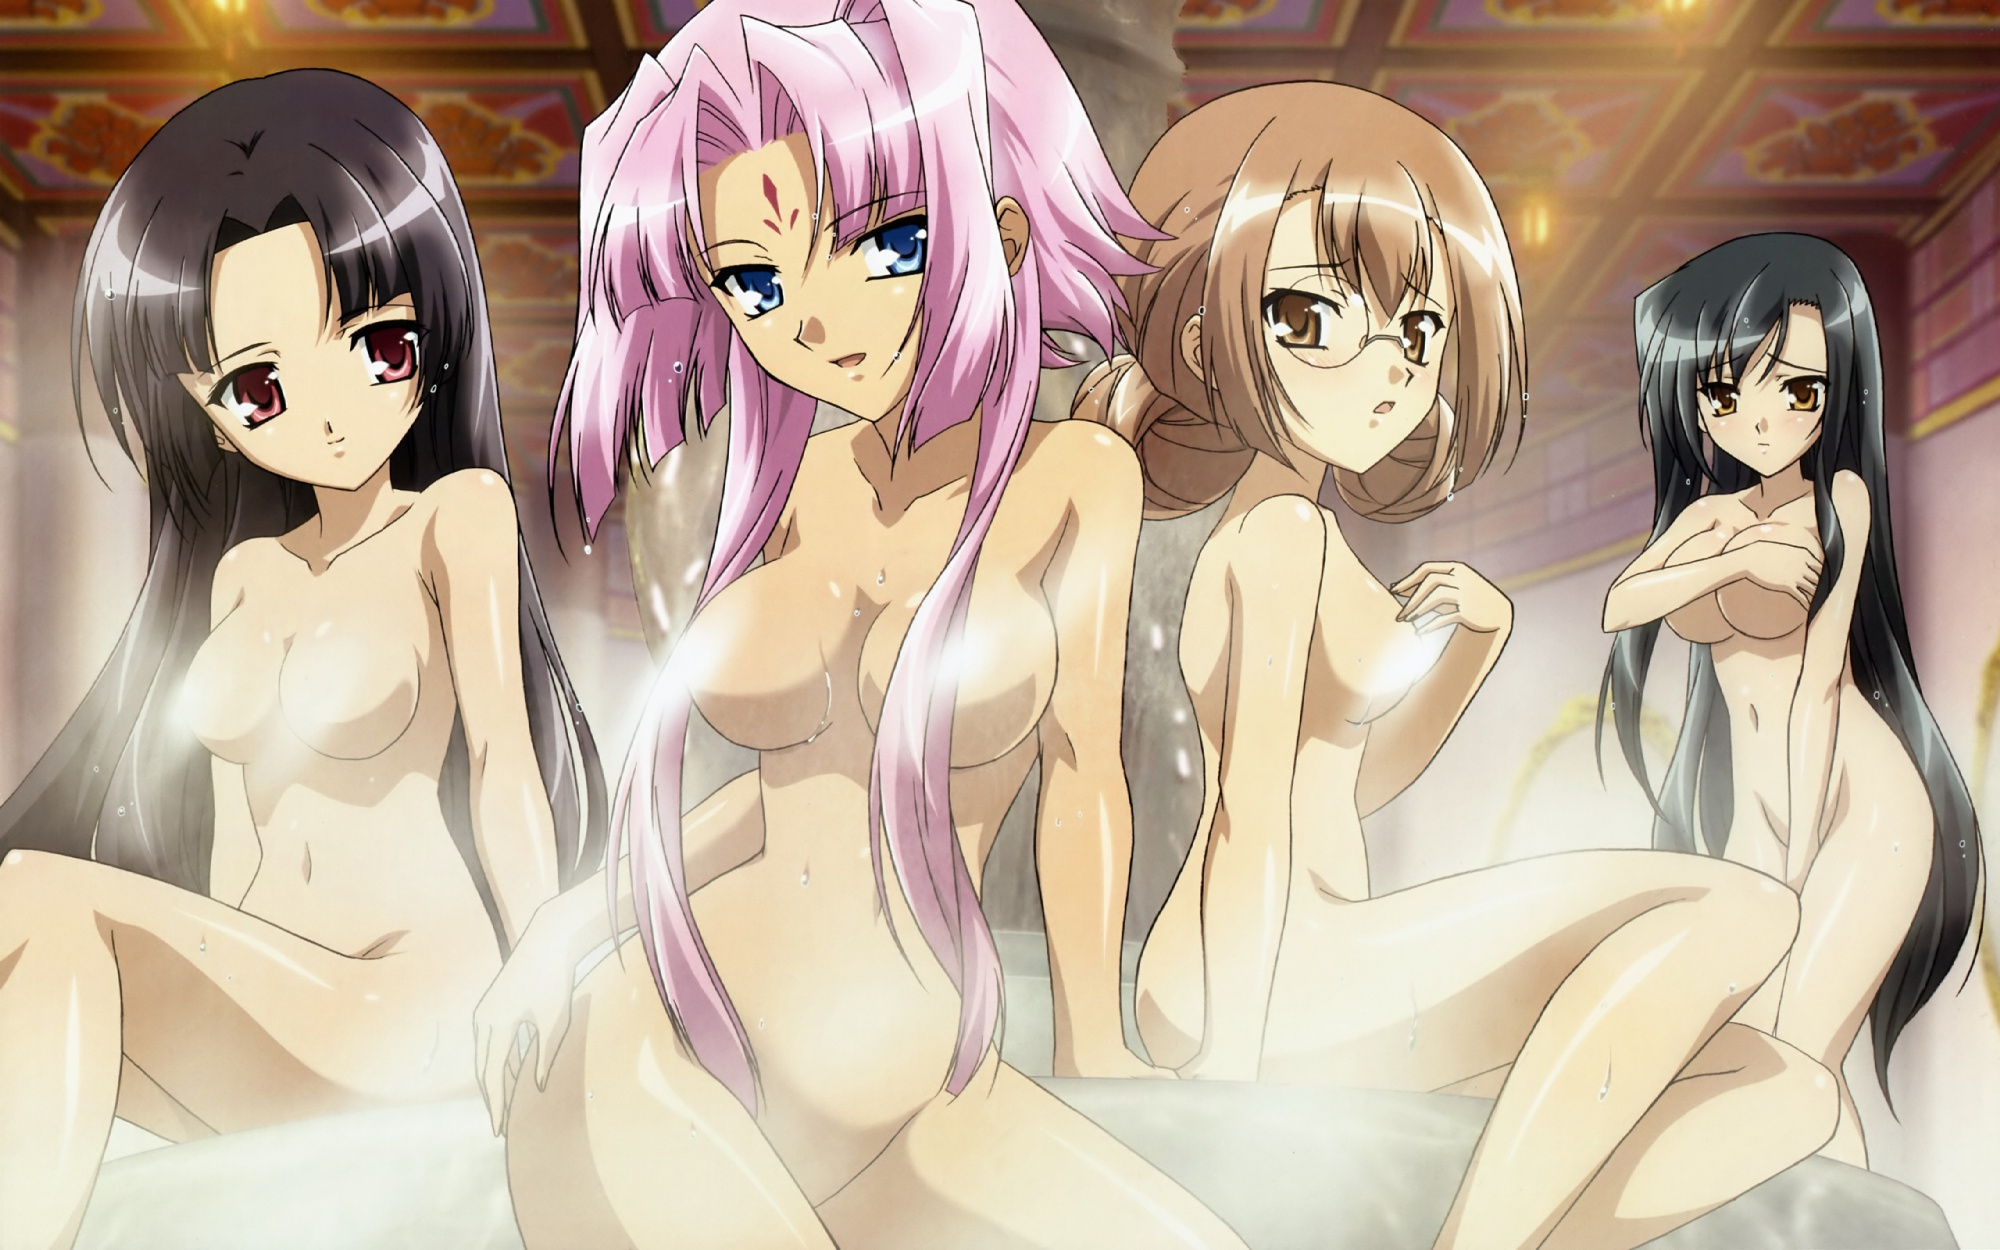 Wallpaper of anime girls naked only adult photo